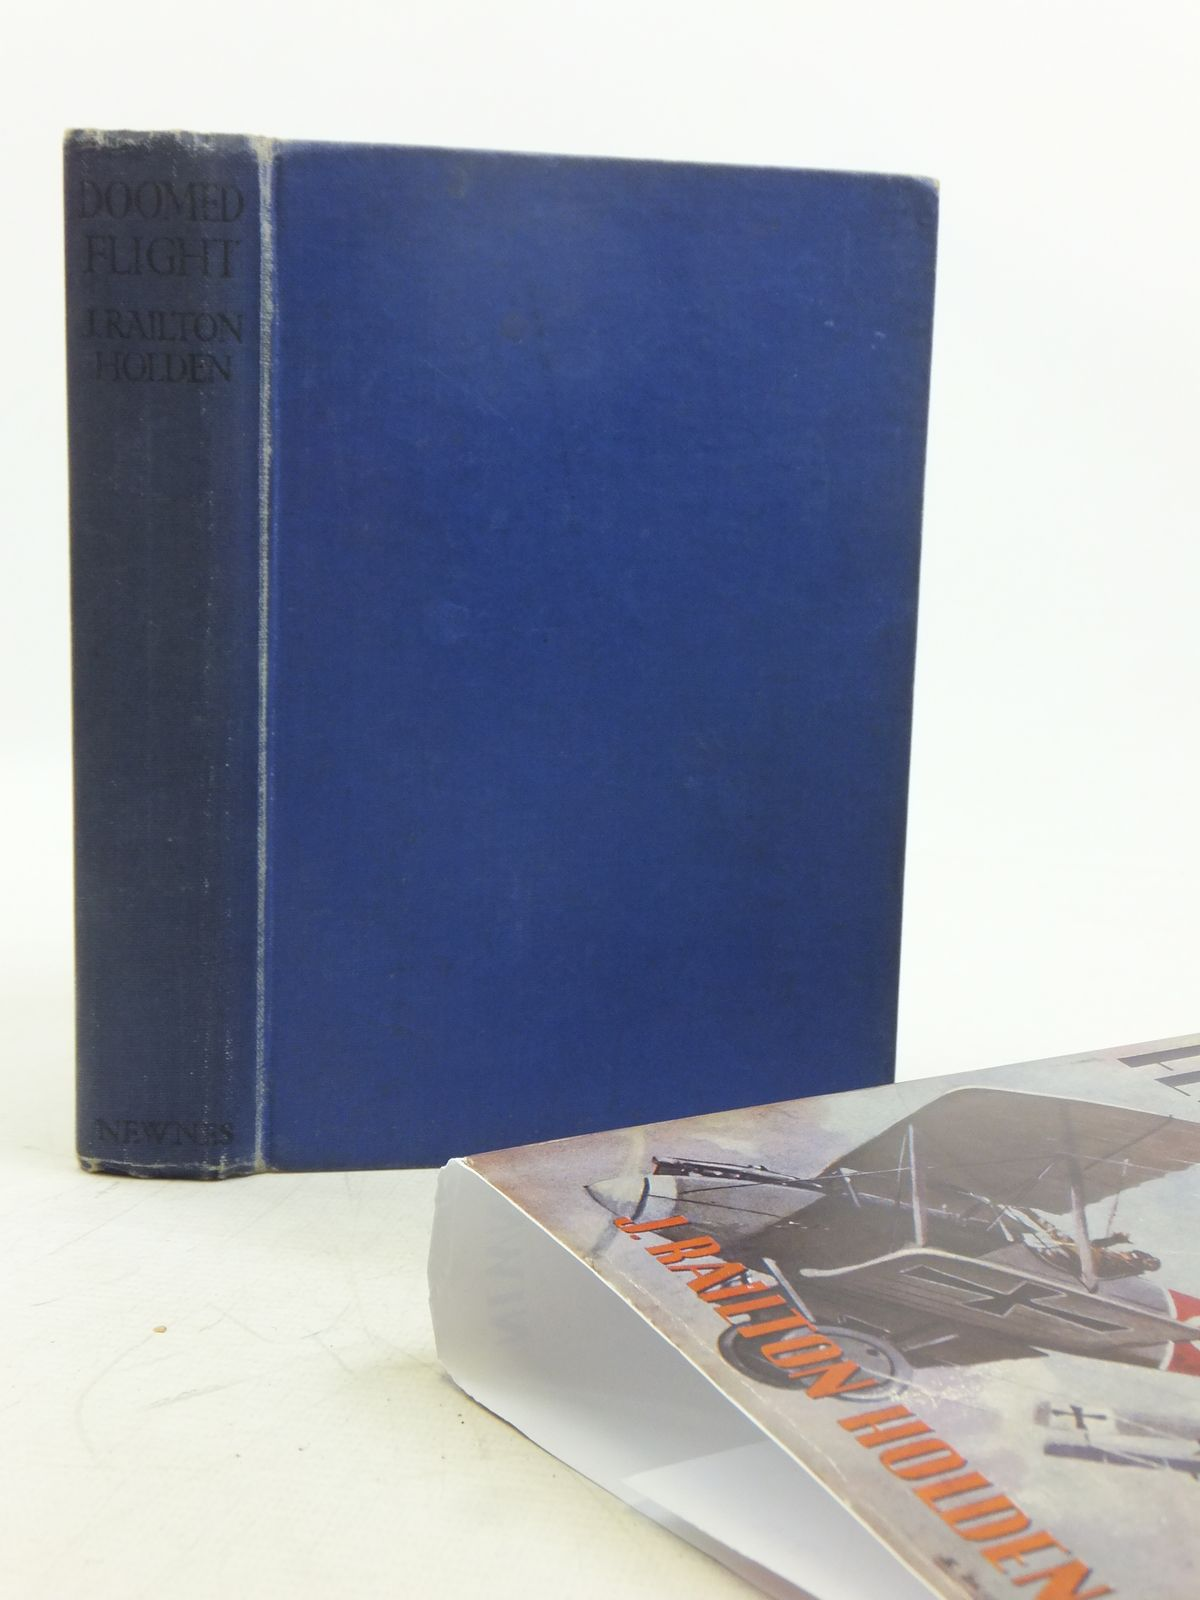 Photo of DOOMED FLIGHT written by Holden, J. Railton published by Newnes (STOCK CODE: 2119169)  for sale by Stella & Rose's Books